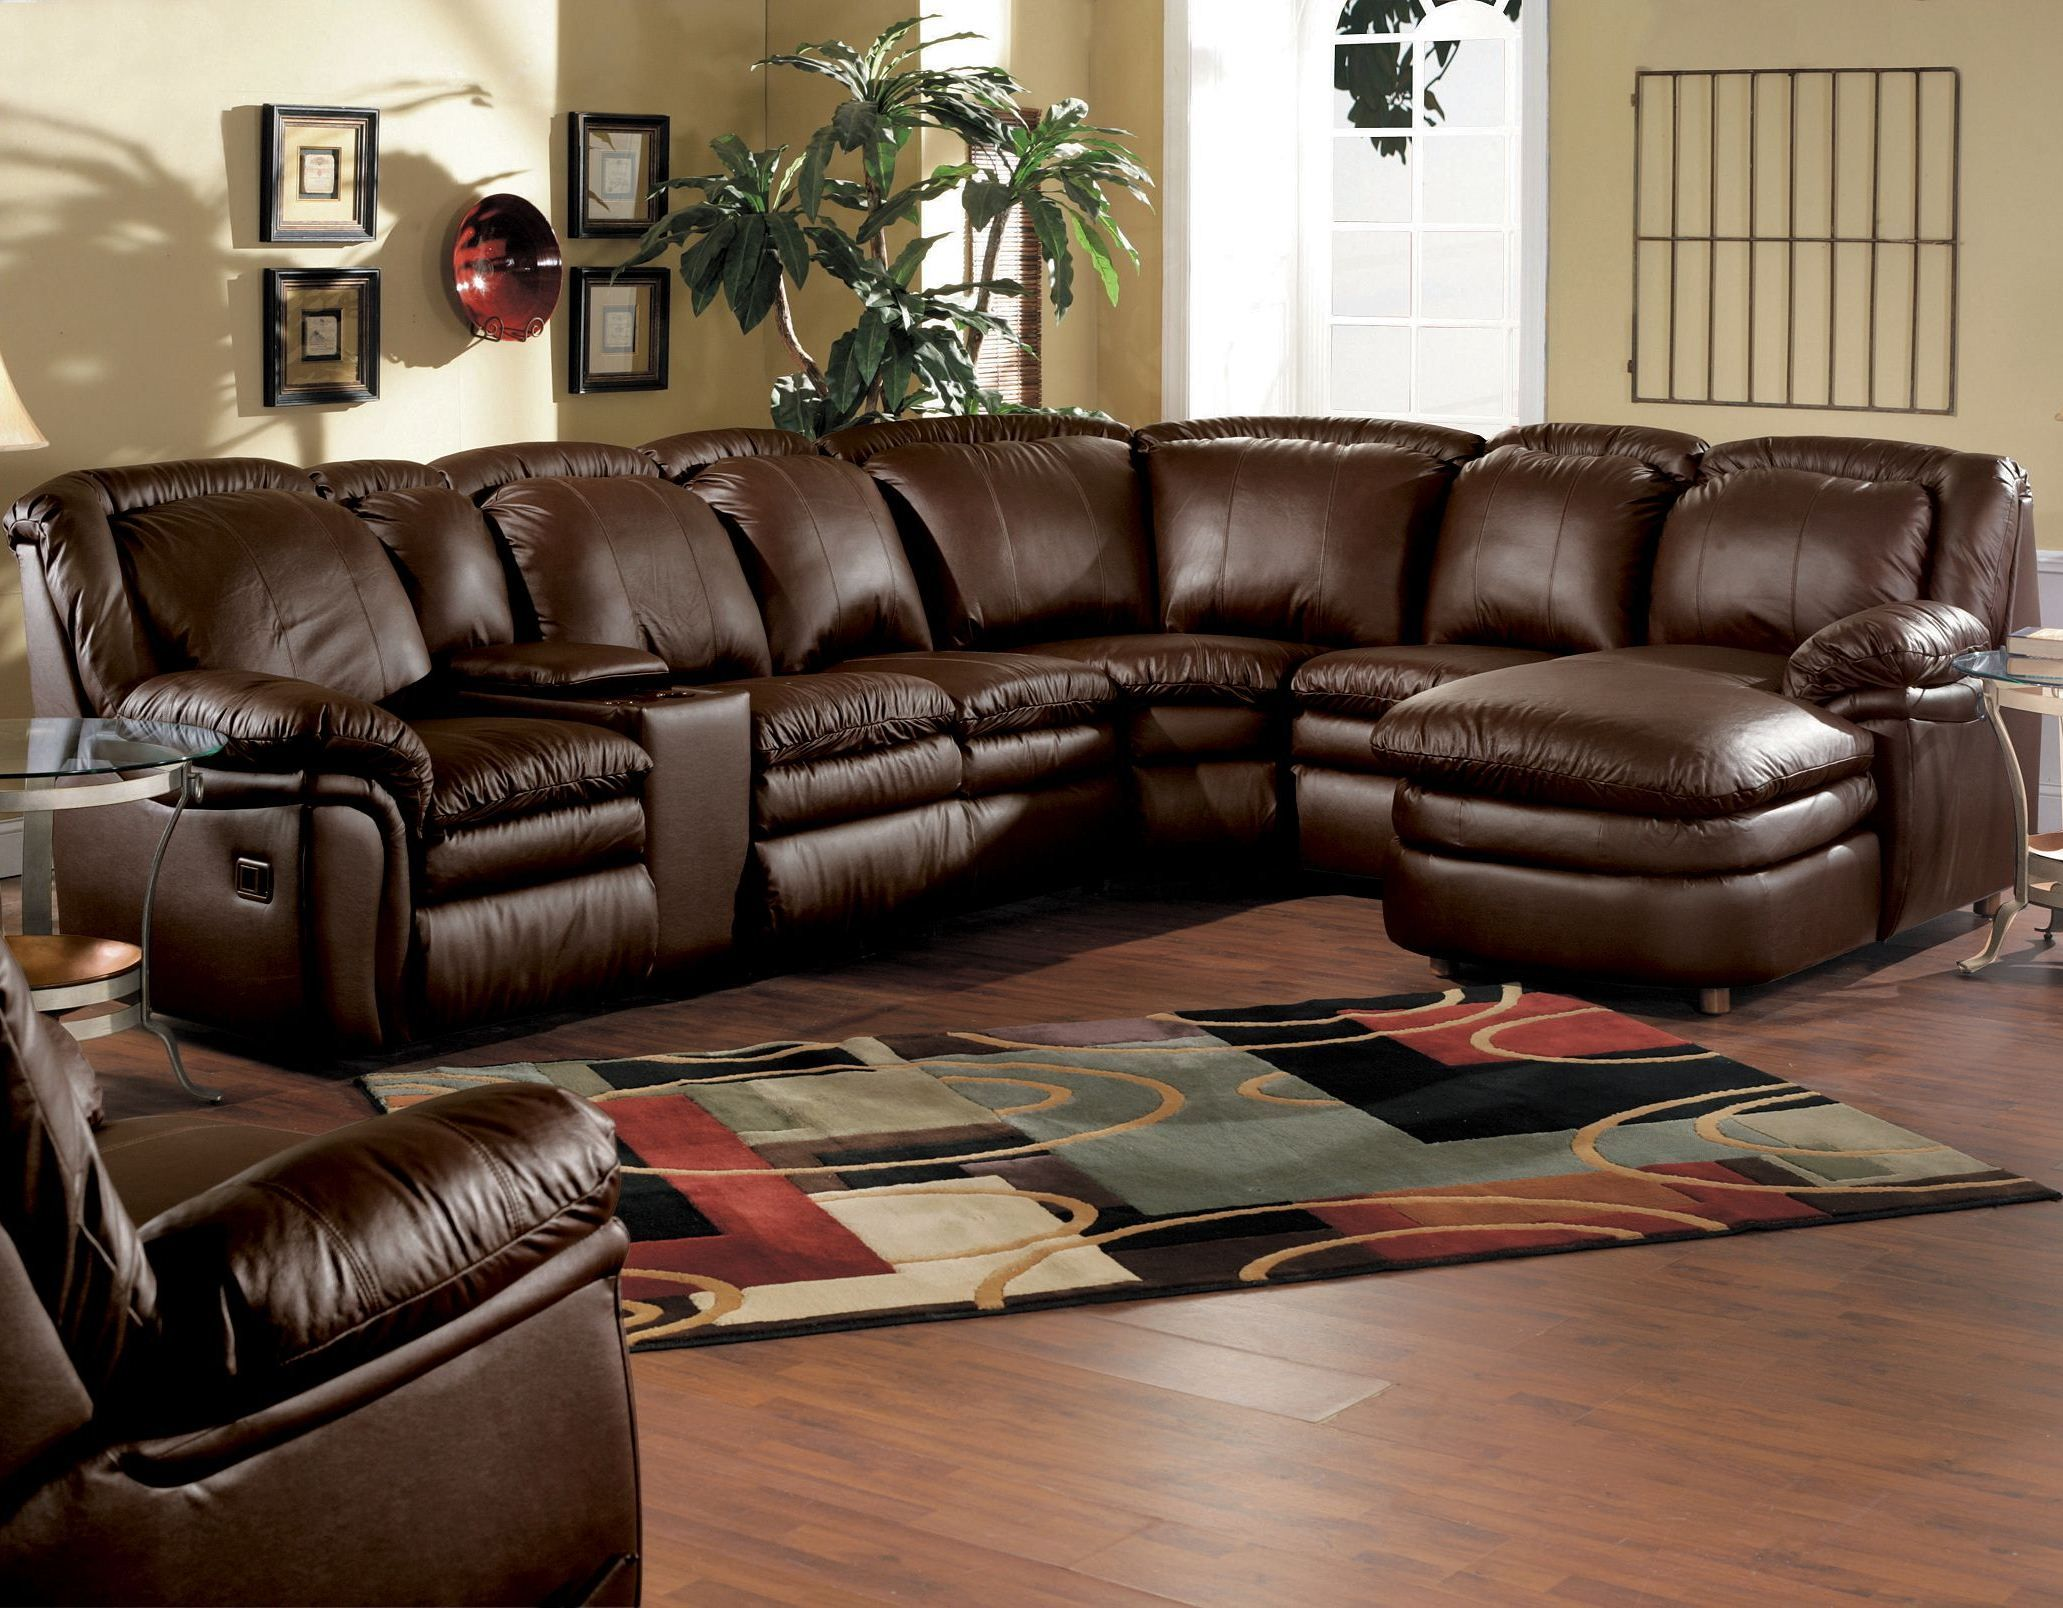 Sectional Sectional Sofas Leather Sectionals Living Room Sets Furniture Living Room Furniture Recliner Sectional Sofa With Recliner